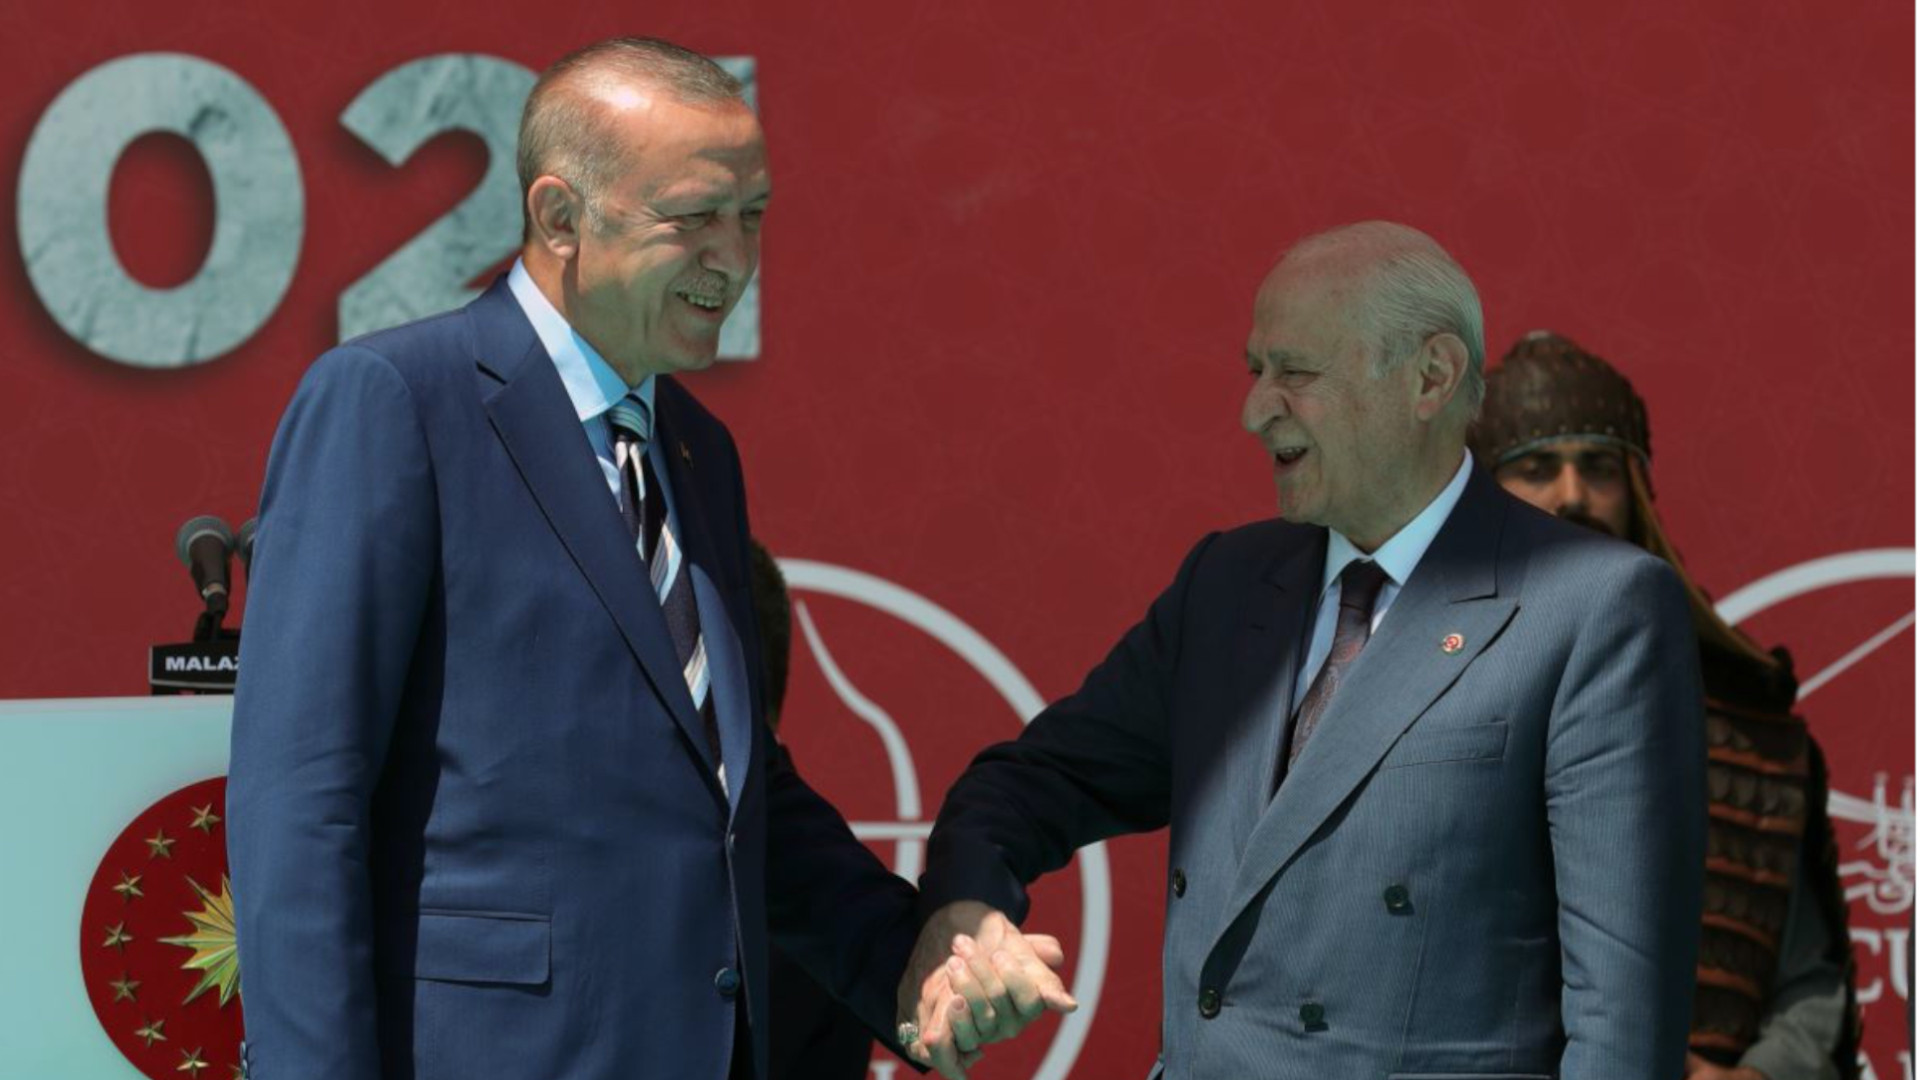 Will the identity politics survive another term in Turkey?